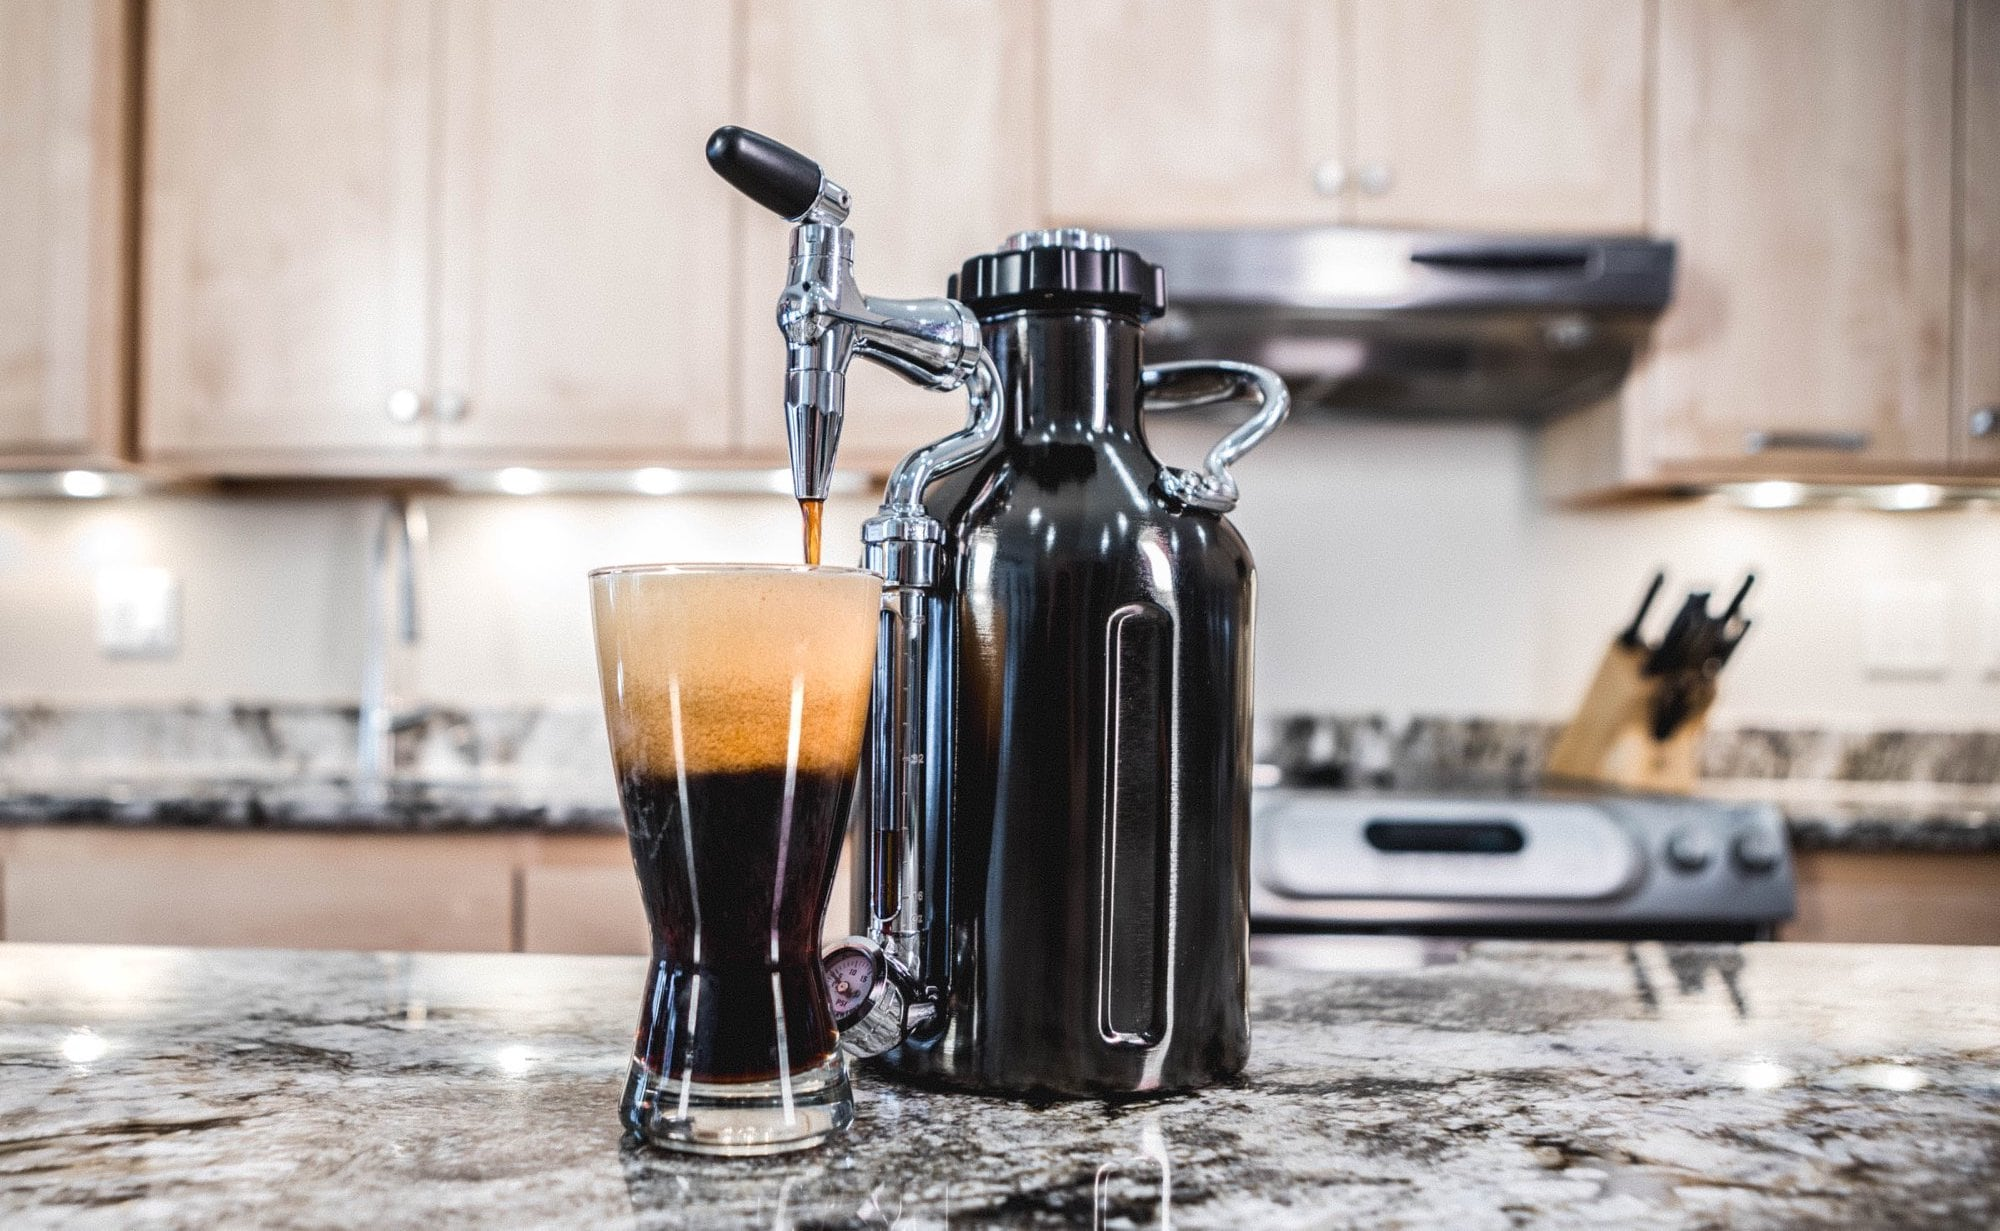 GrowlerWerks uKeg Nitro Cold Brew Coffee Machine provides frothy cold brew on tap